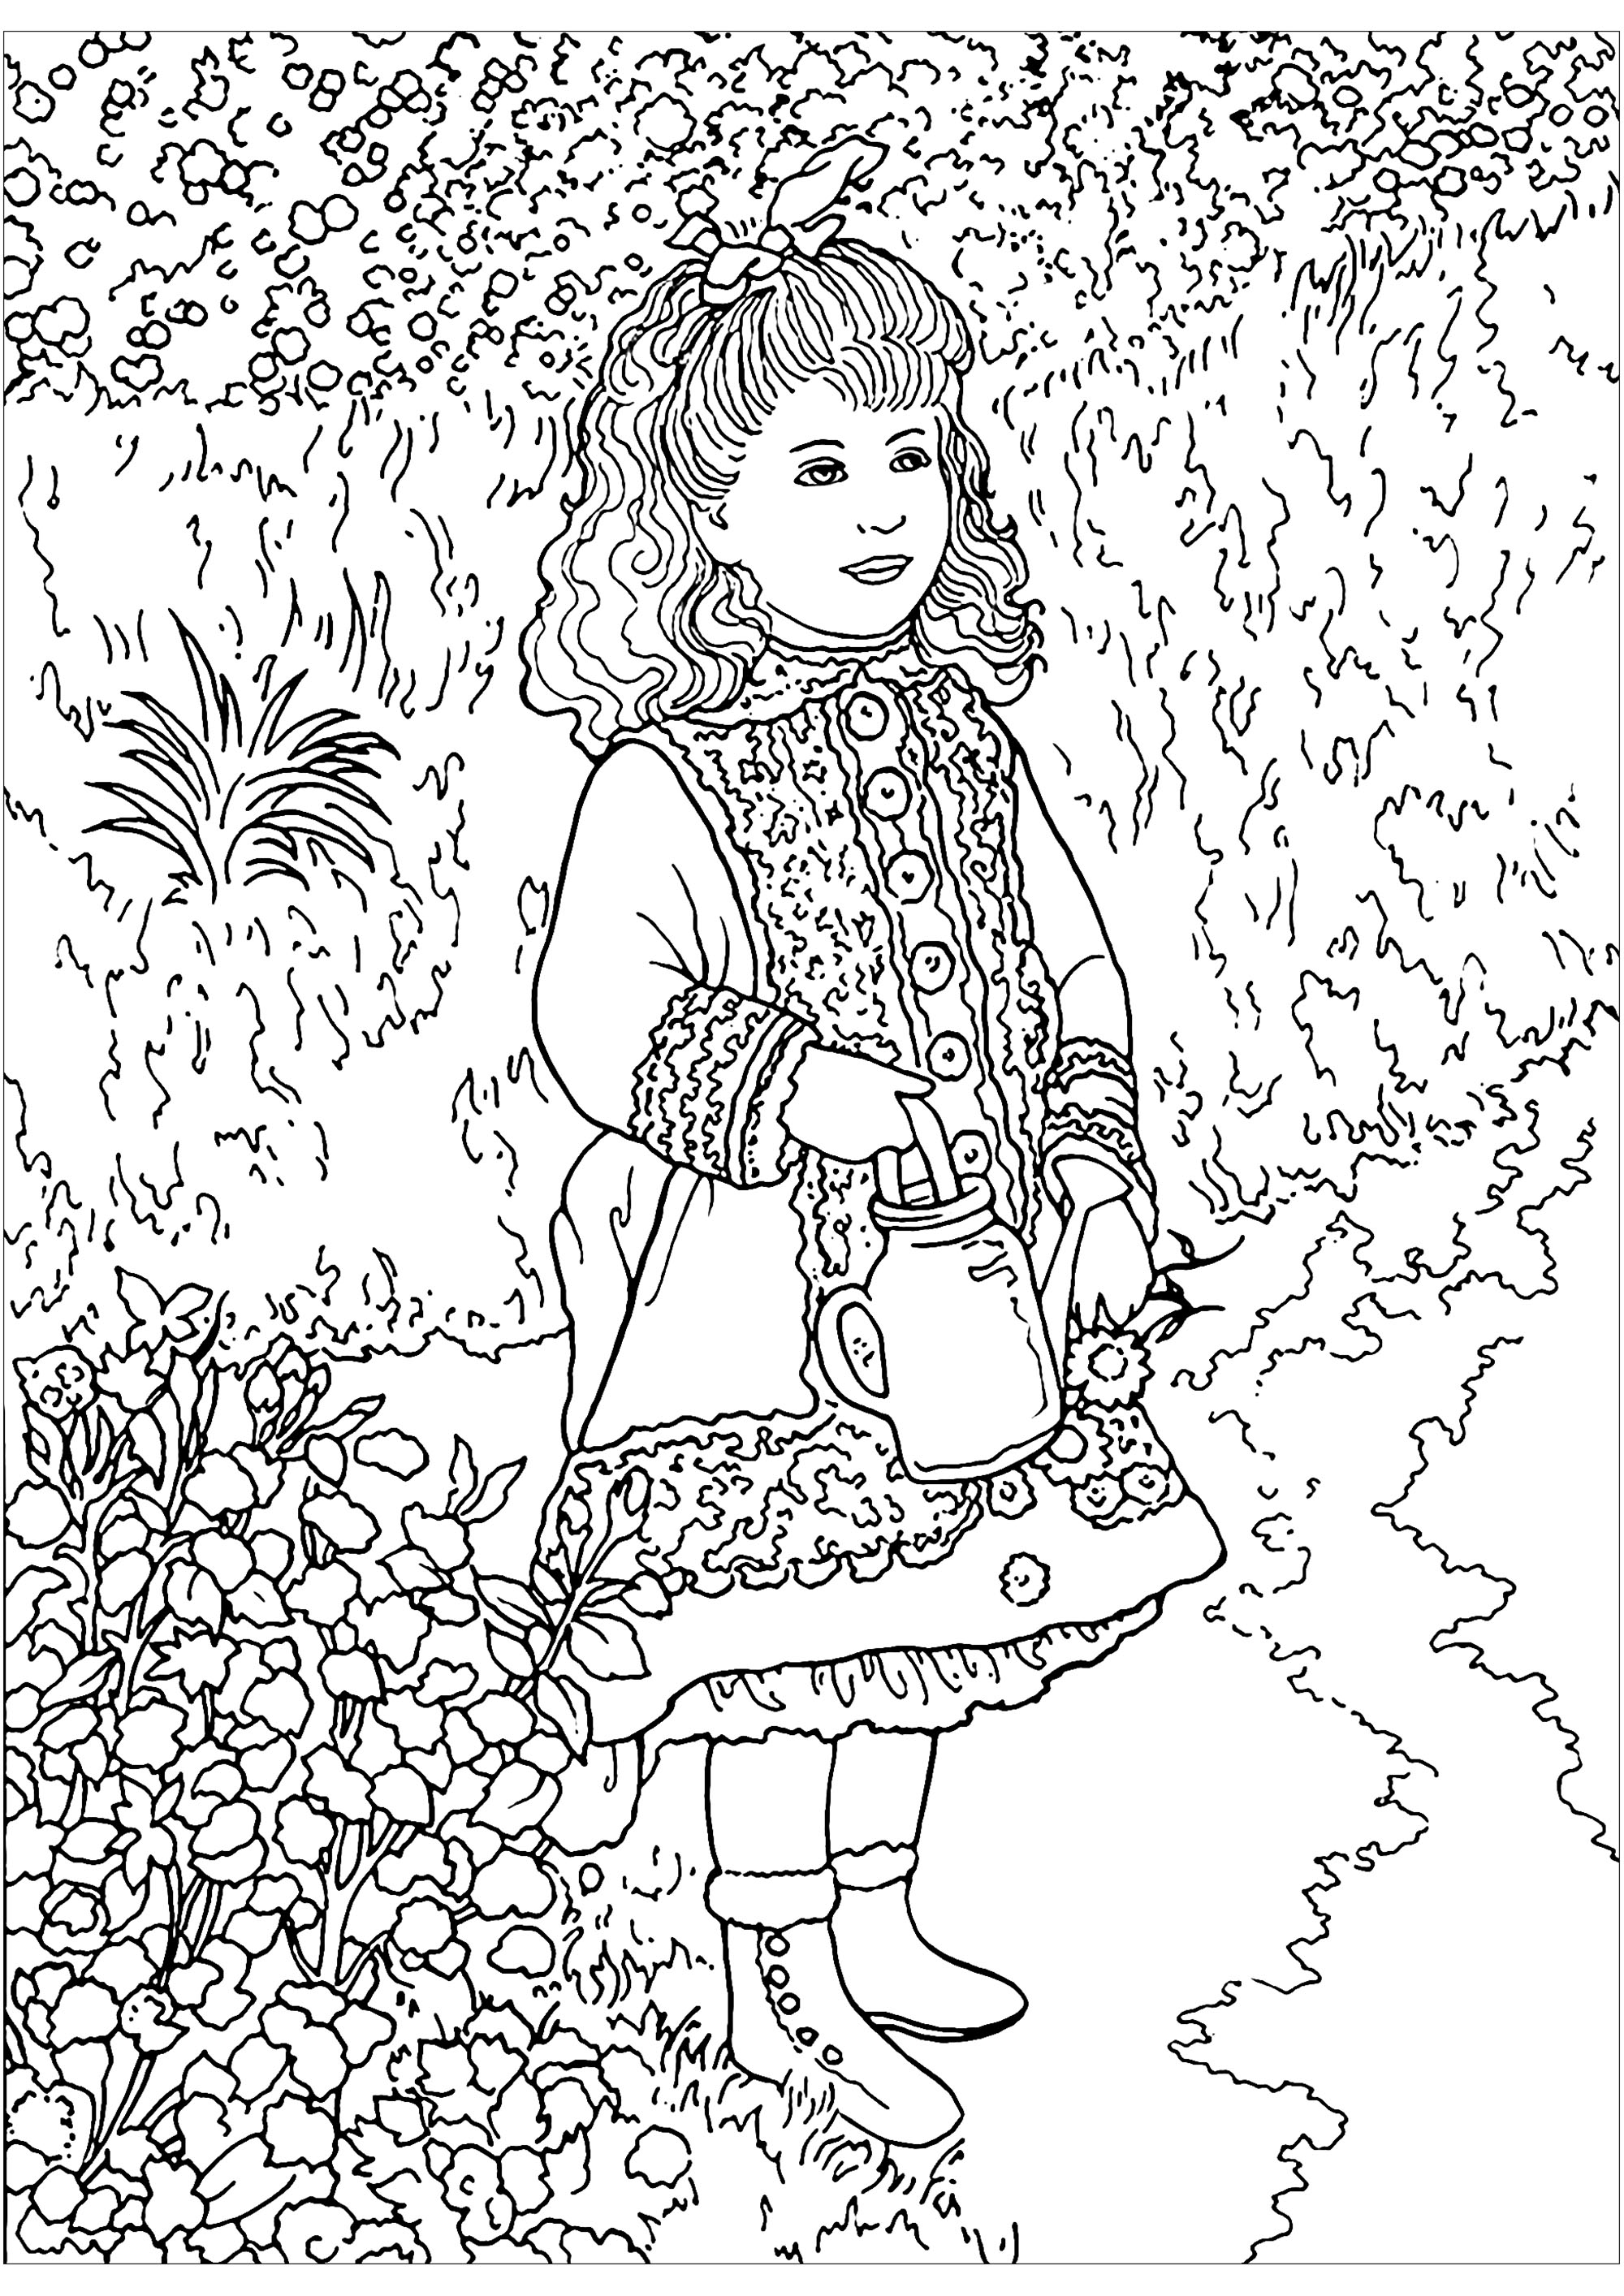 Coloring page inspired by a masterpiece by Impressionist painter Pierre-Auguste Renoir : A Girl with a Watering Can - Image with : Pierre-Auguste Renoir, Impressionism